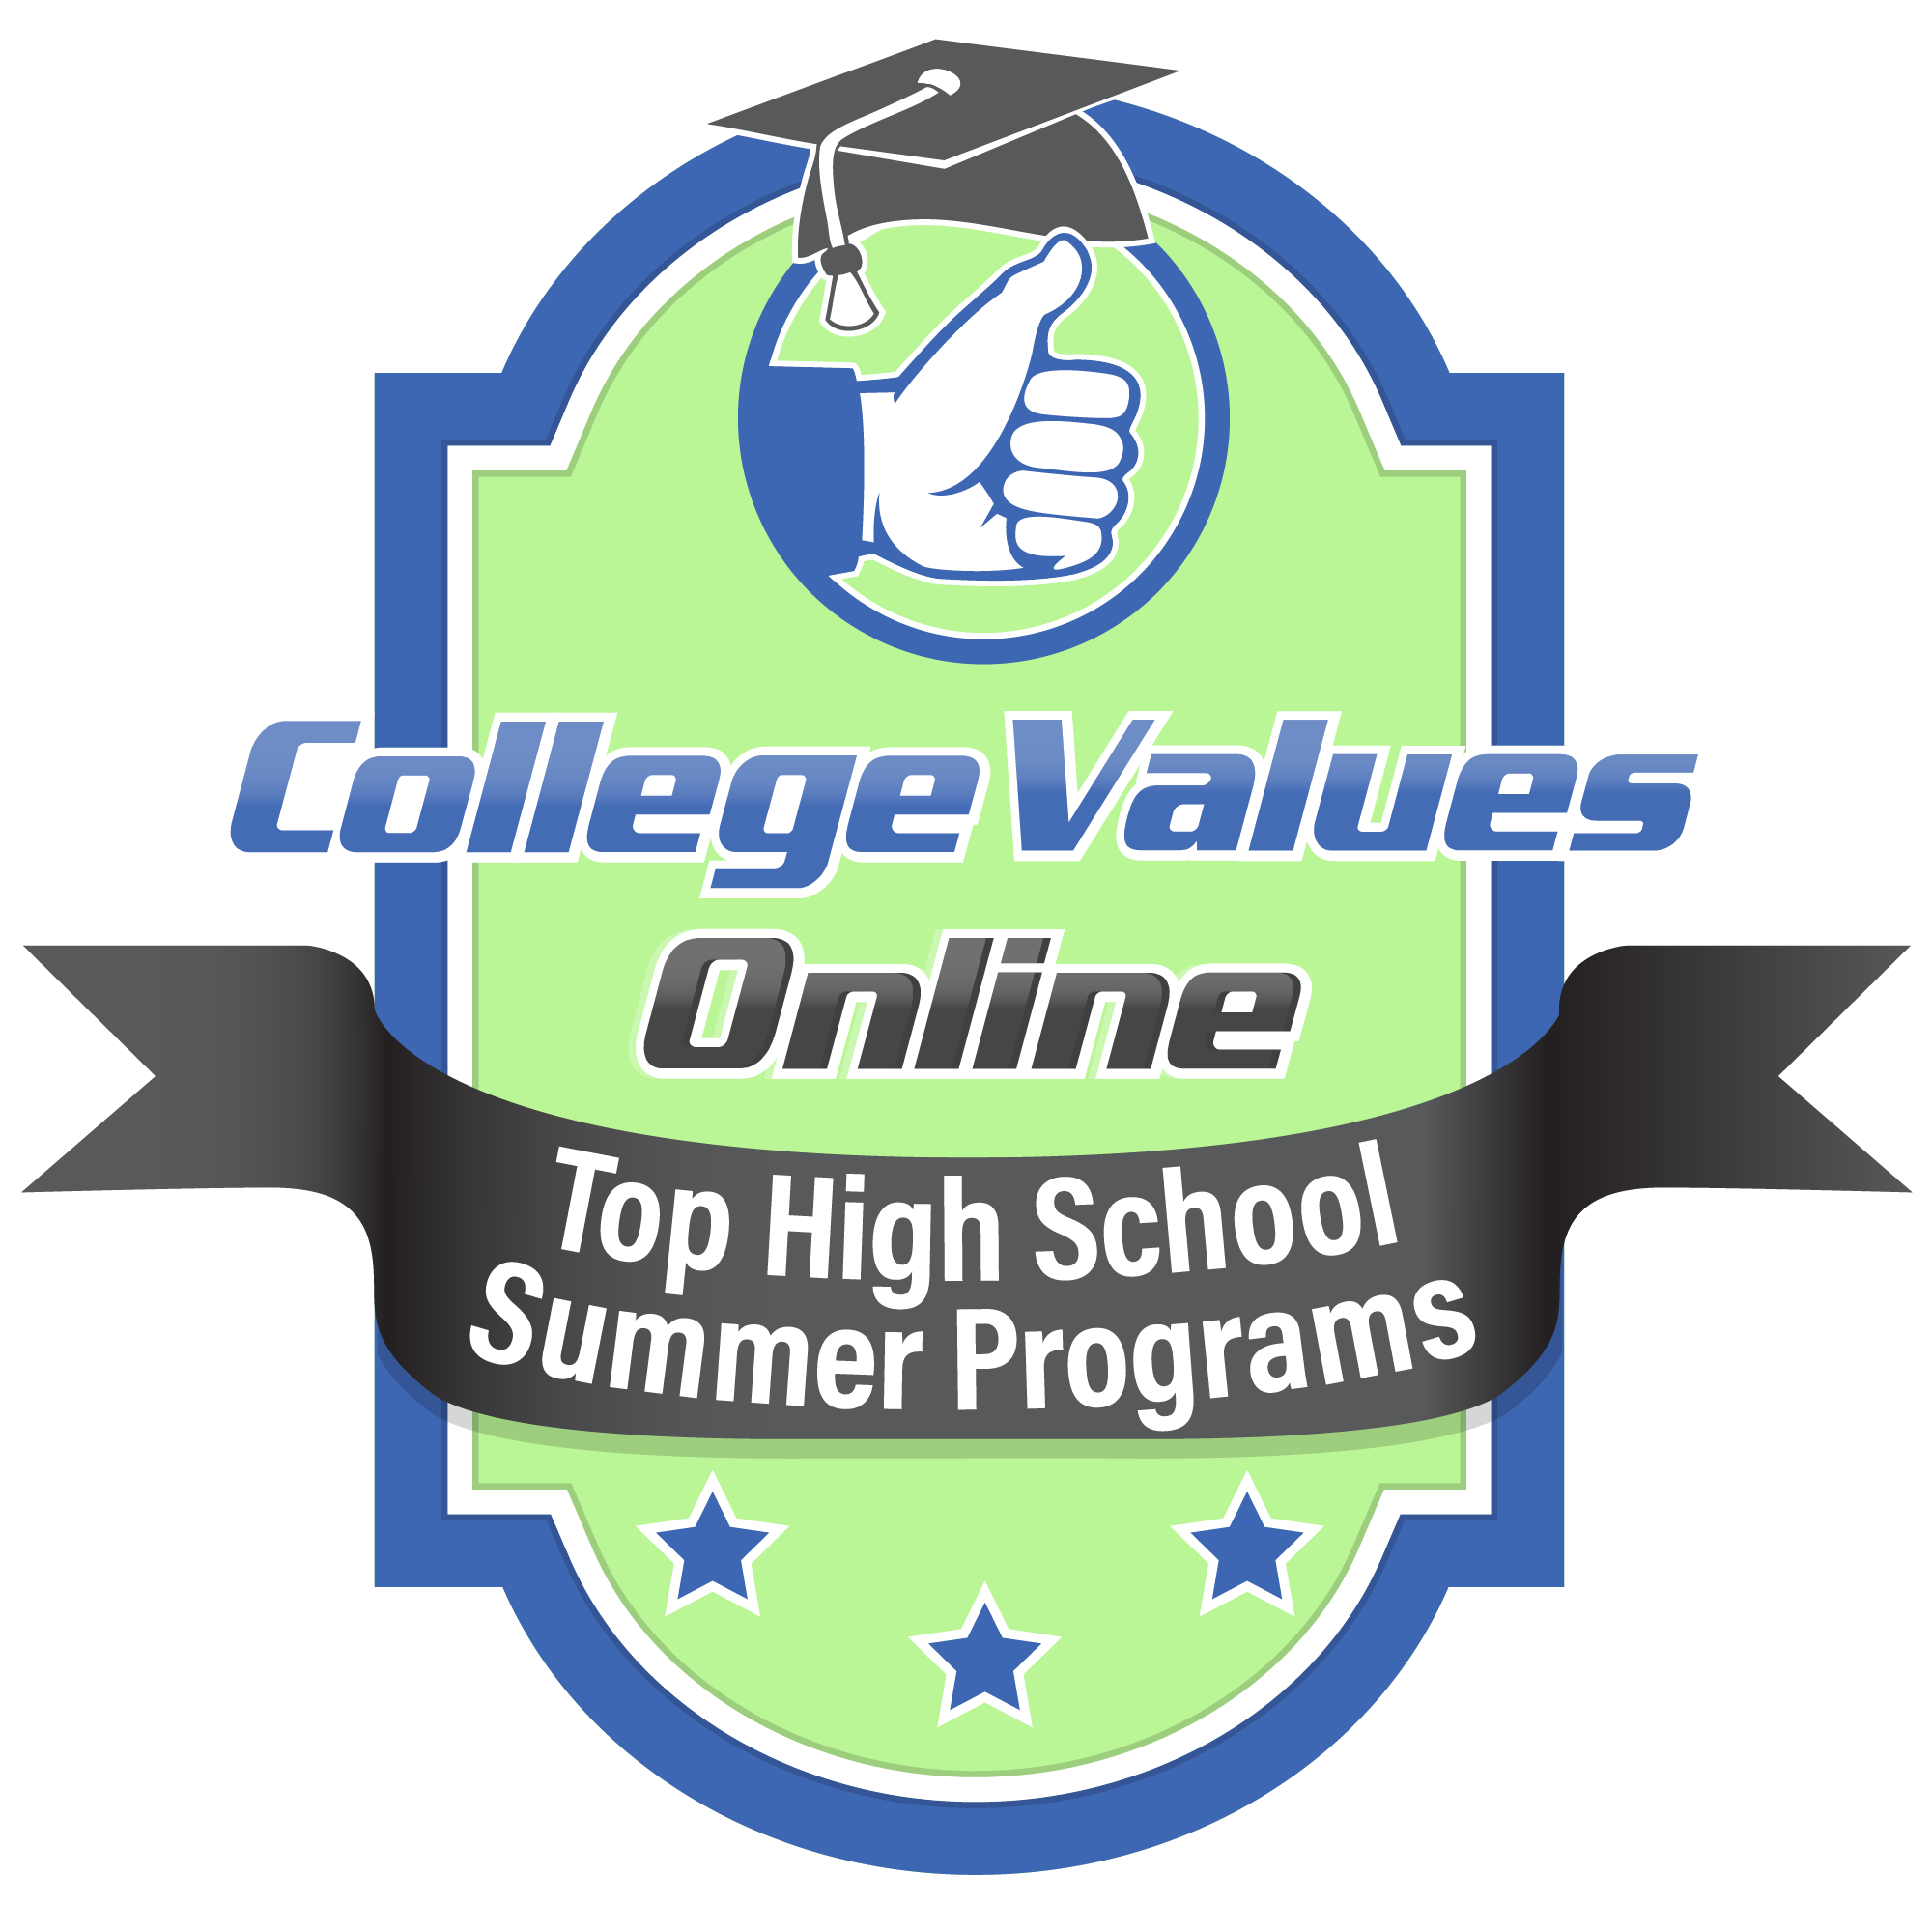 CVO-Top High School Summer Programs